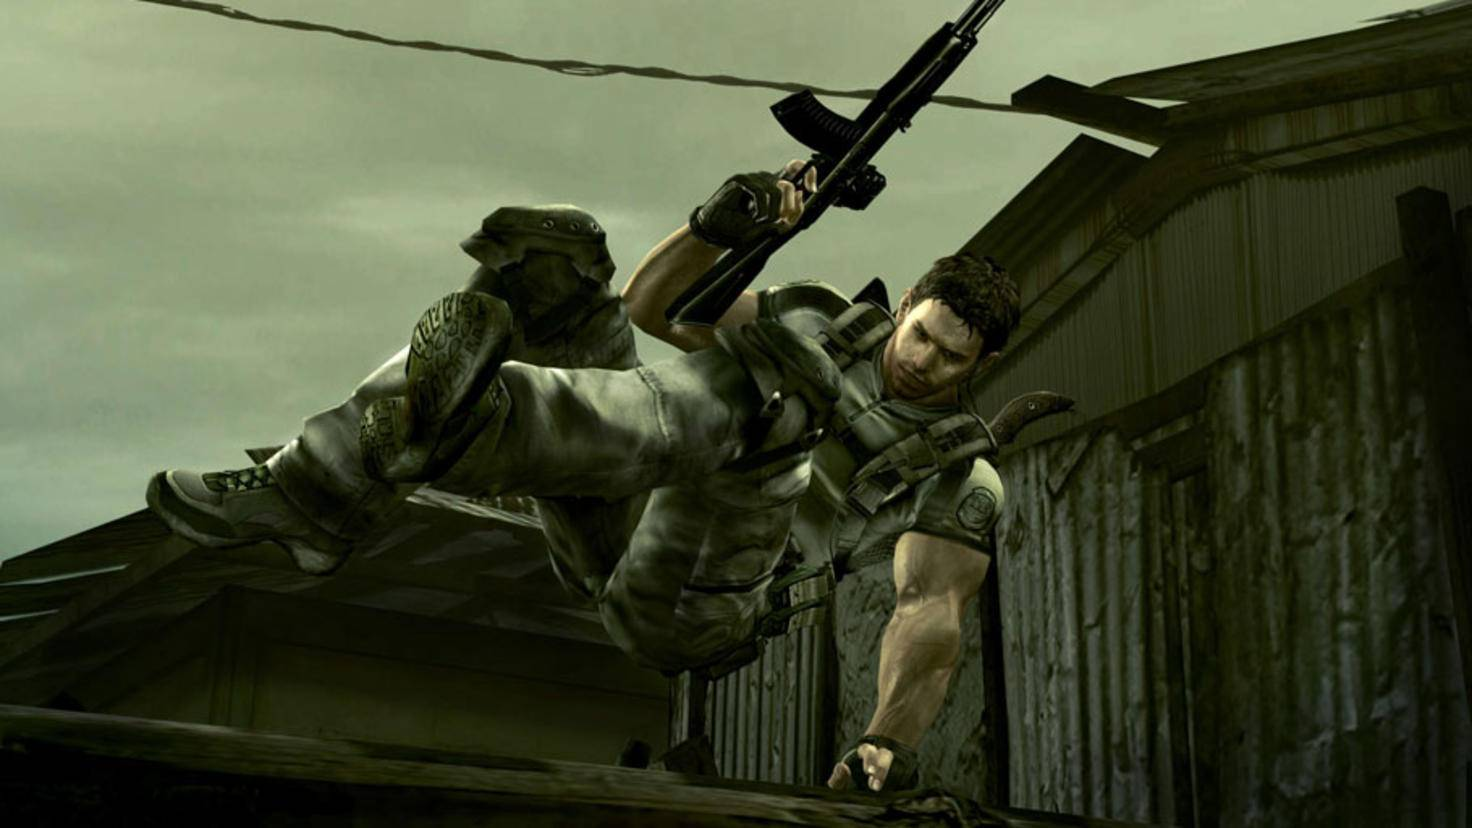 Resident-Evil-5-Chris-Redfield